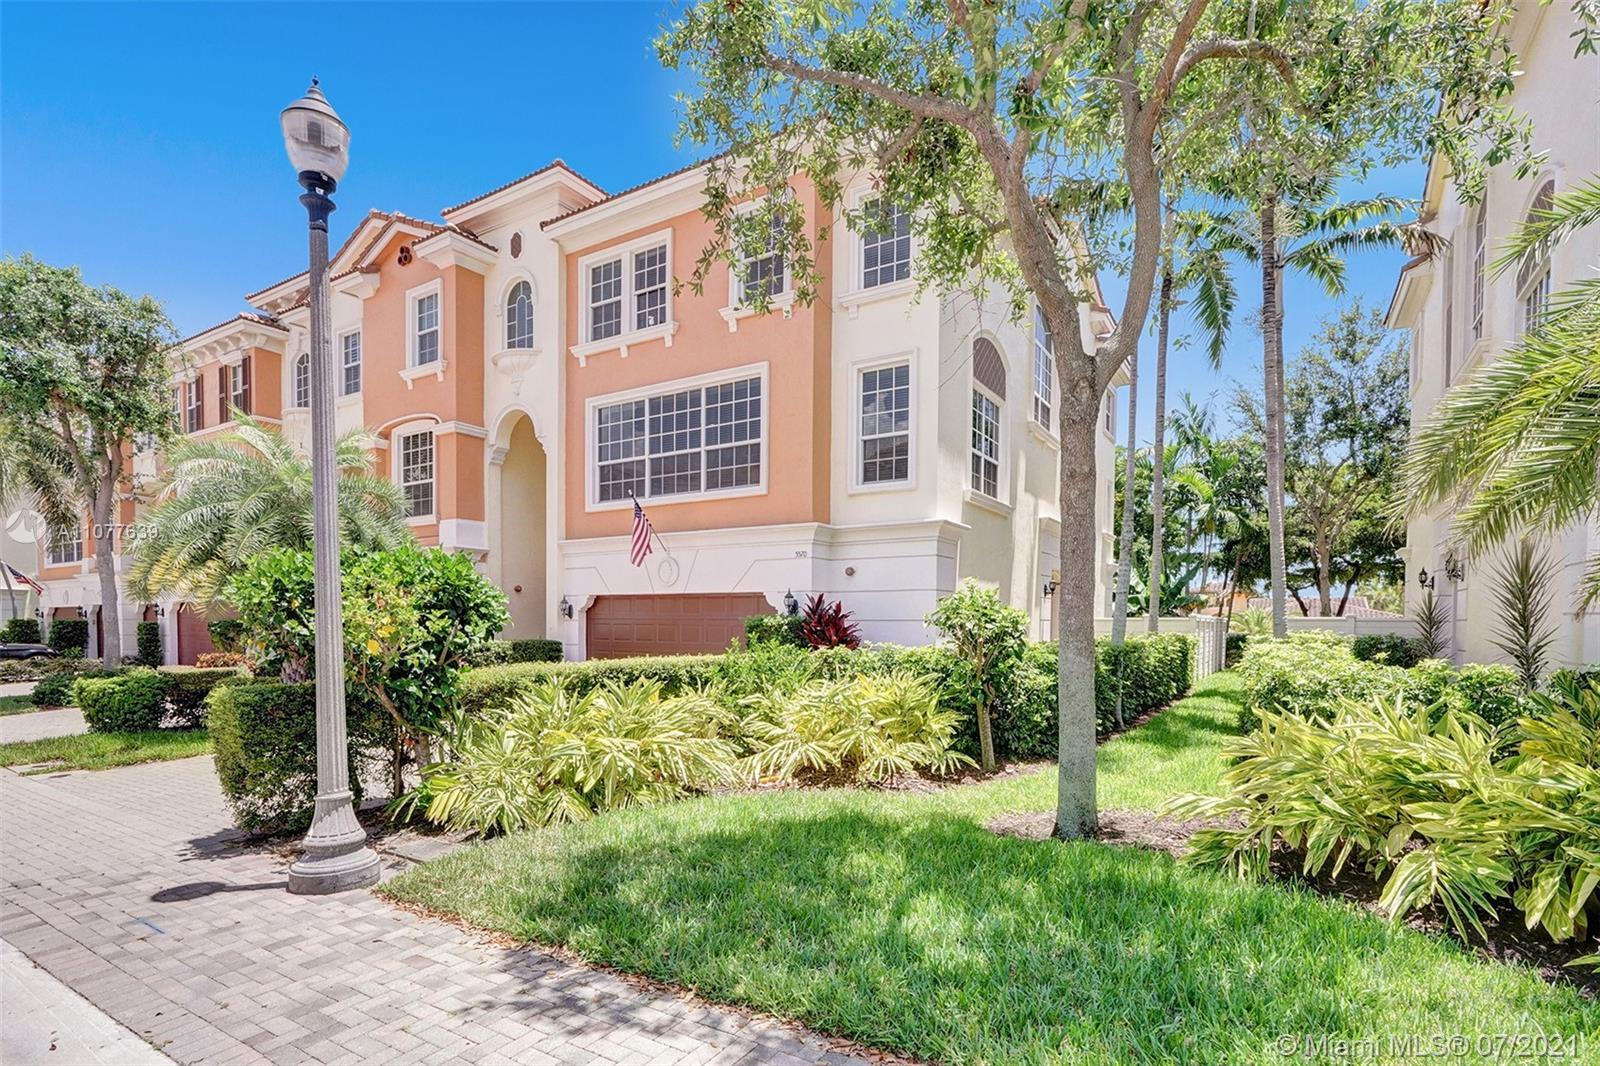 Luxurious tri-level 4 BR/3.5 BA end unit townhouse in East Boca with smart locks and thermostats, wh